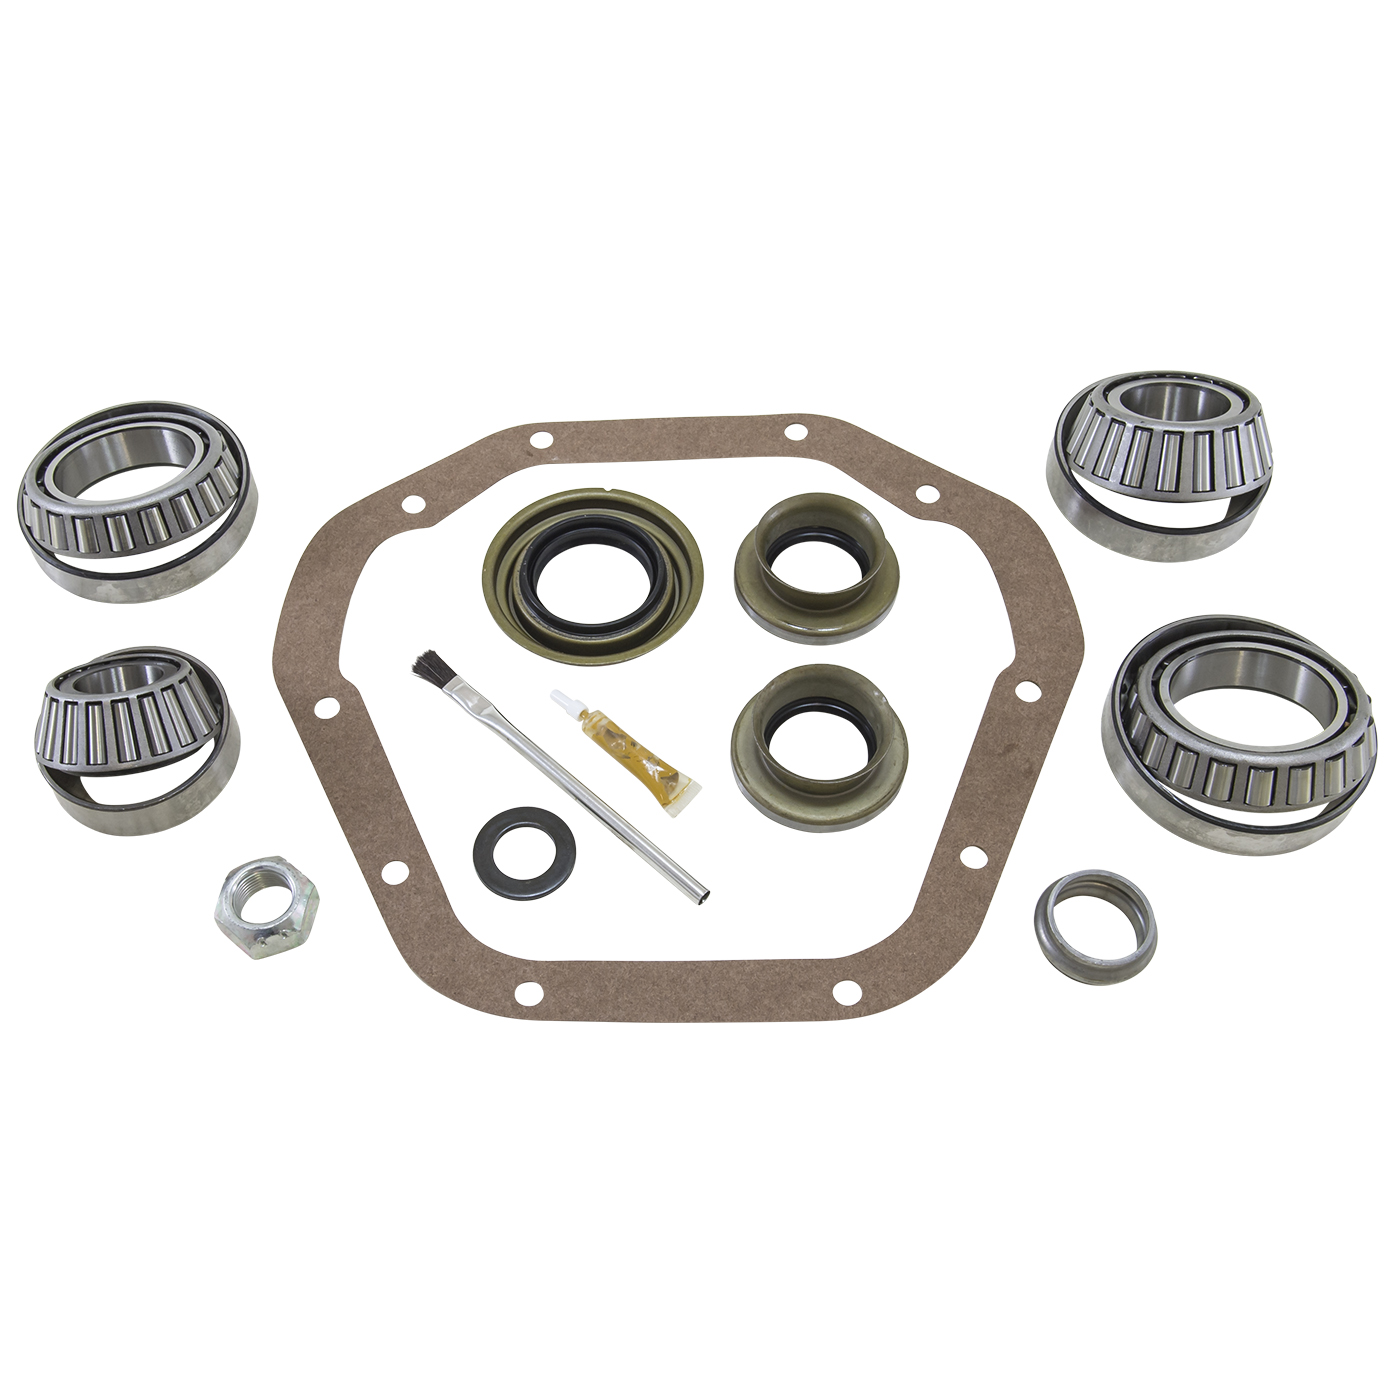 ZBKD80-A - USA Standard Bearing kit for  Dana 80 (4.125